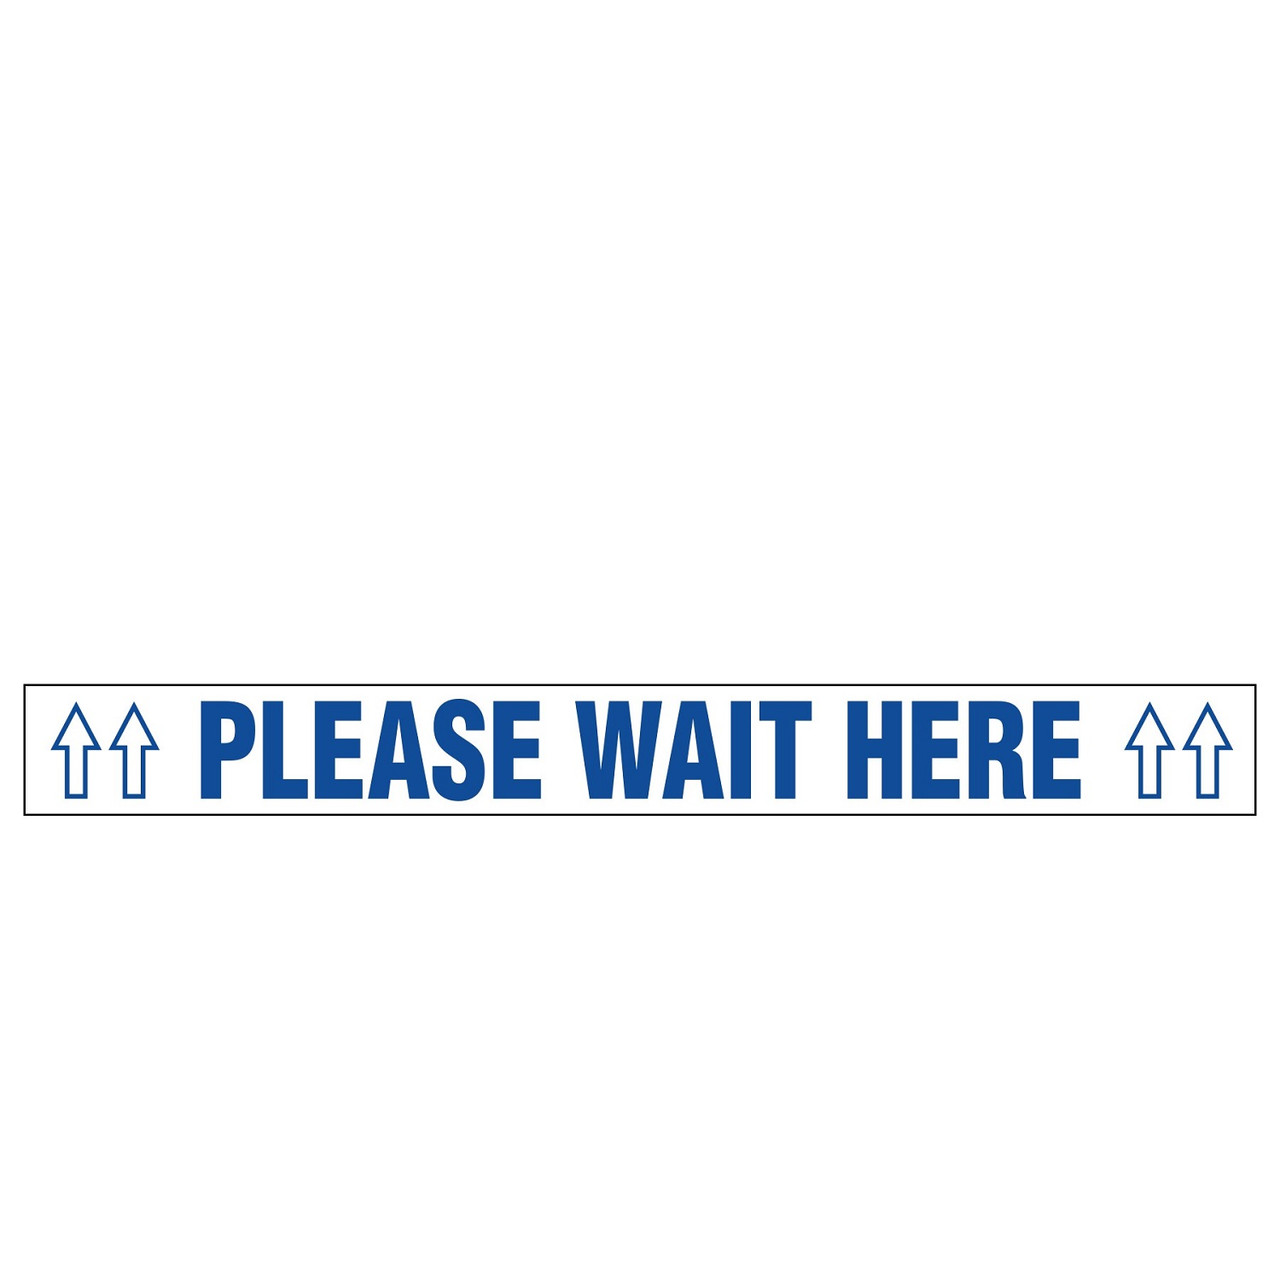 Floor Sign Tape   Please Wait Here   2.25 Inch x 55 Foot Roll   Blue/White